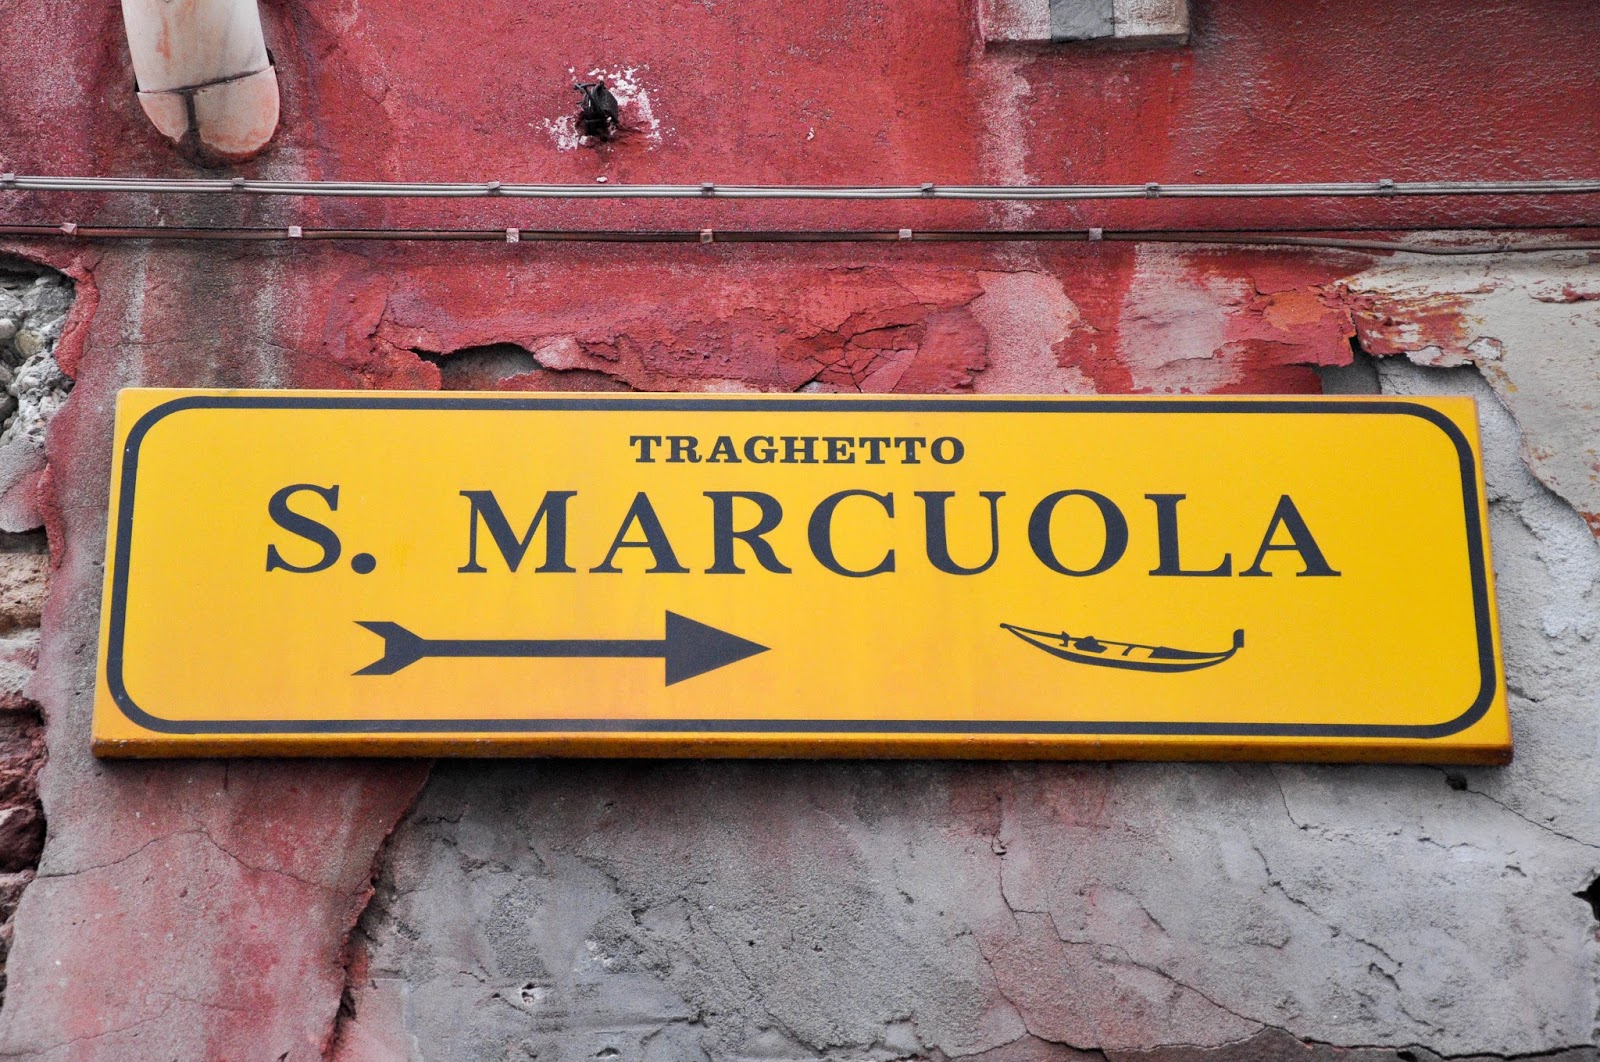 Sign pointing to S. Marcuola traghetto stop, Venice, Italy